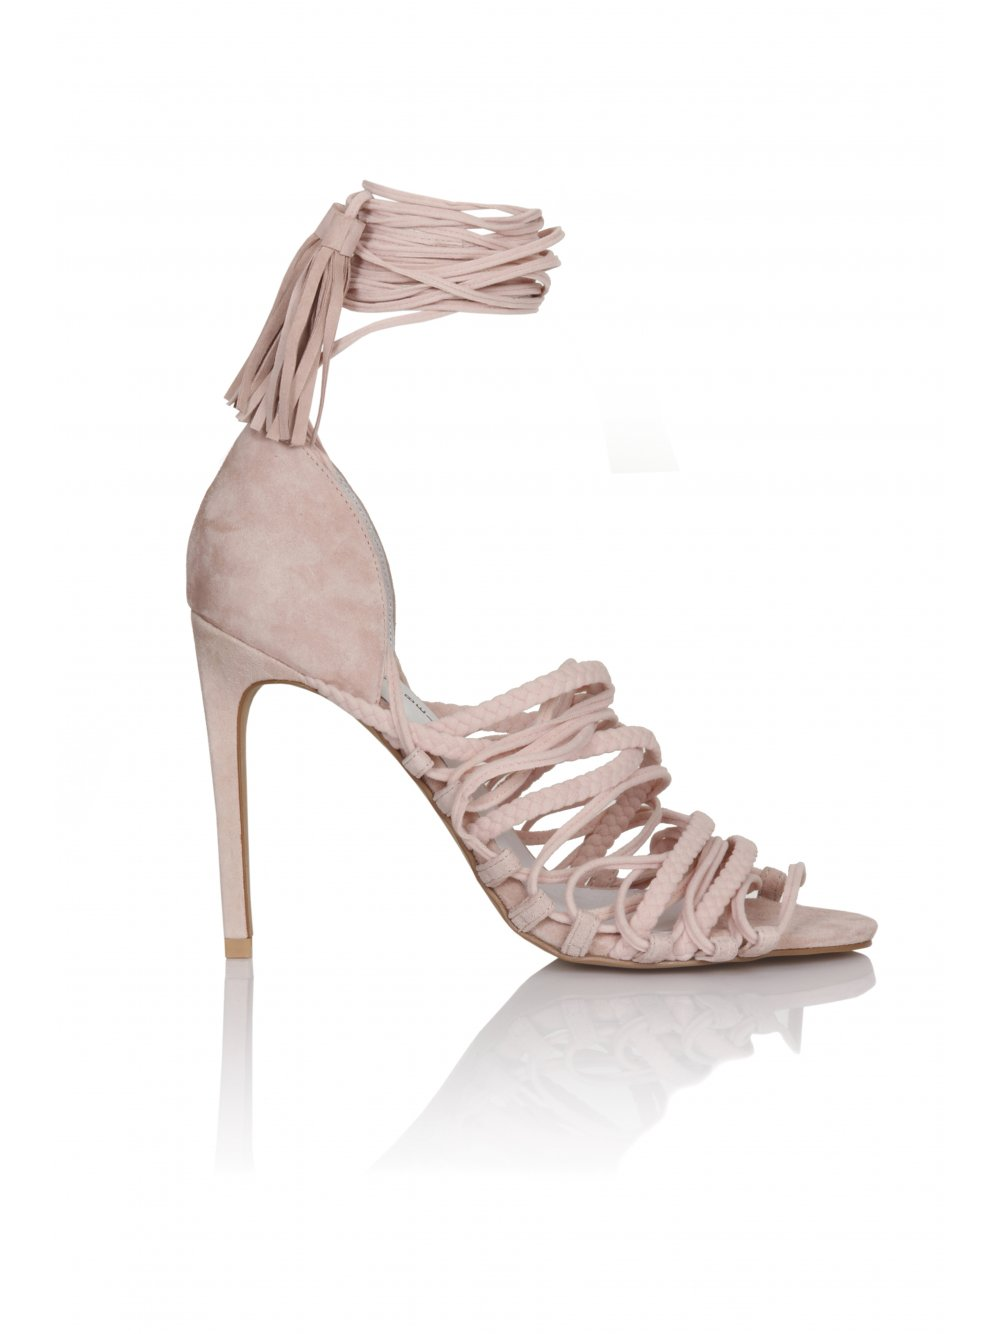 JEFFREY CAMPBELL Sabra Pink Suede Lace Up Sandals - JEFFREY CAMPBELL from Lavish Alice UK